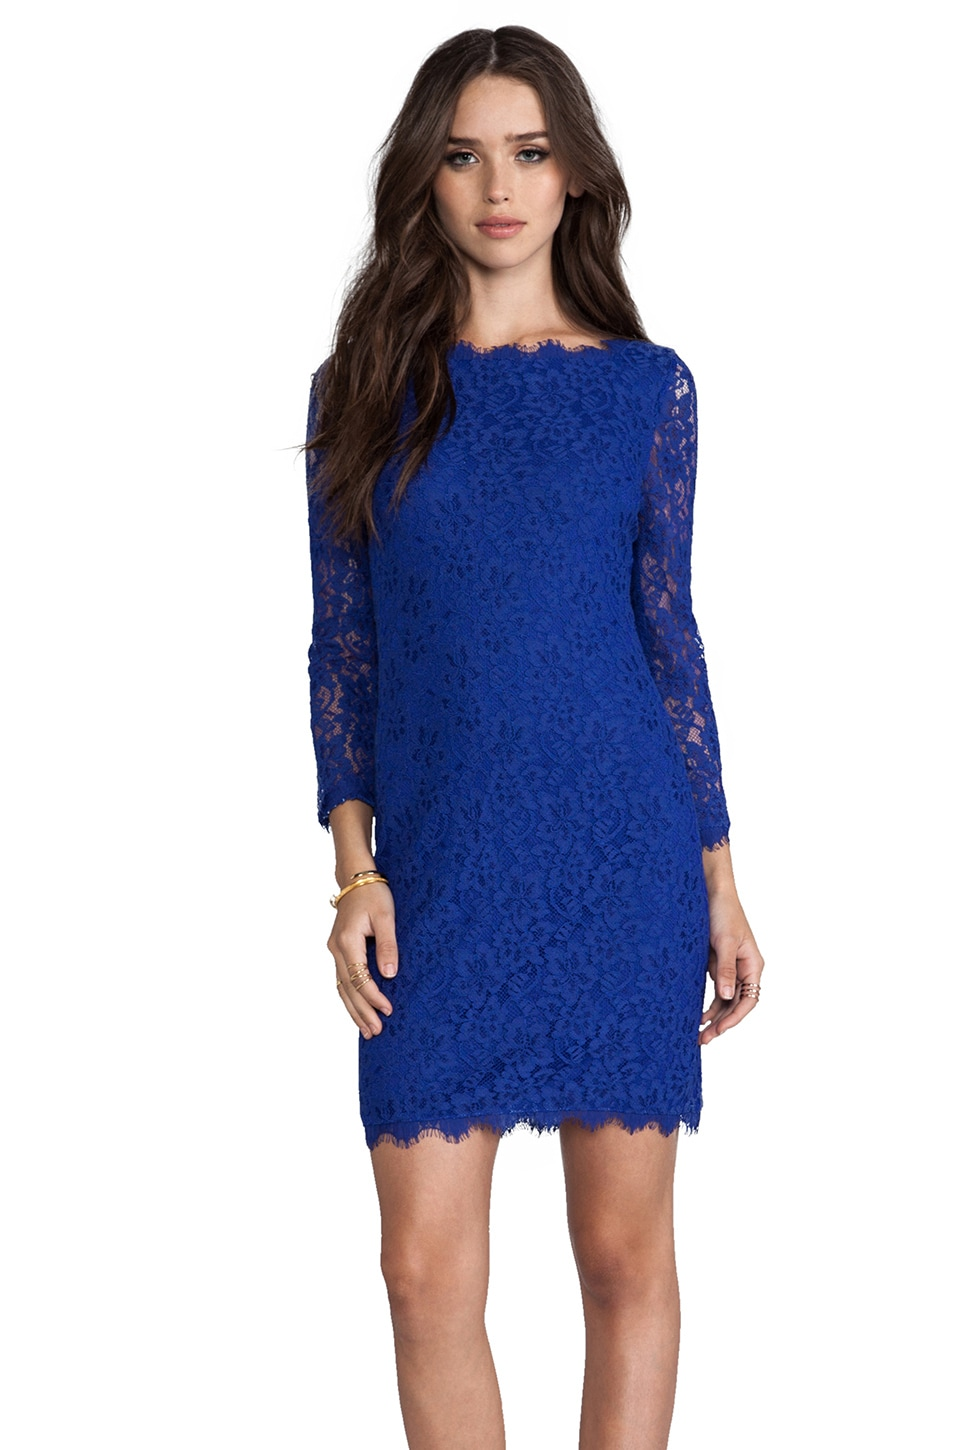 Diane von Furstenberg Zarita Dress in Vivid Blue